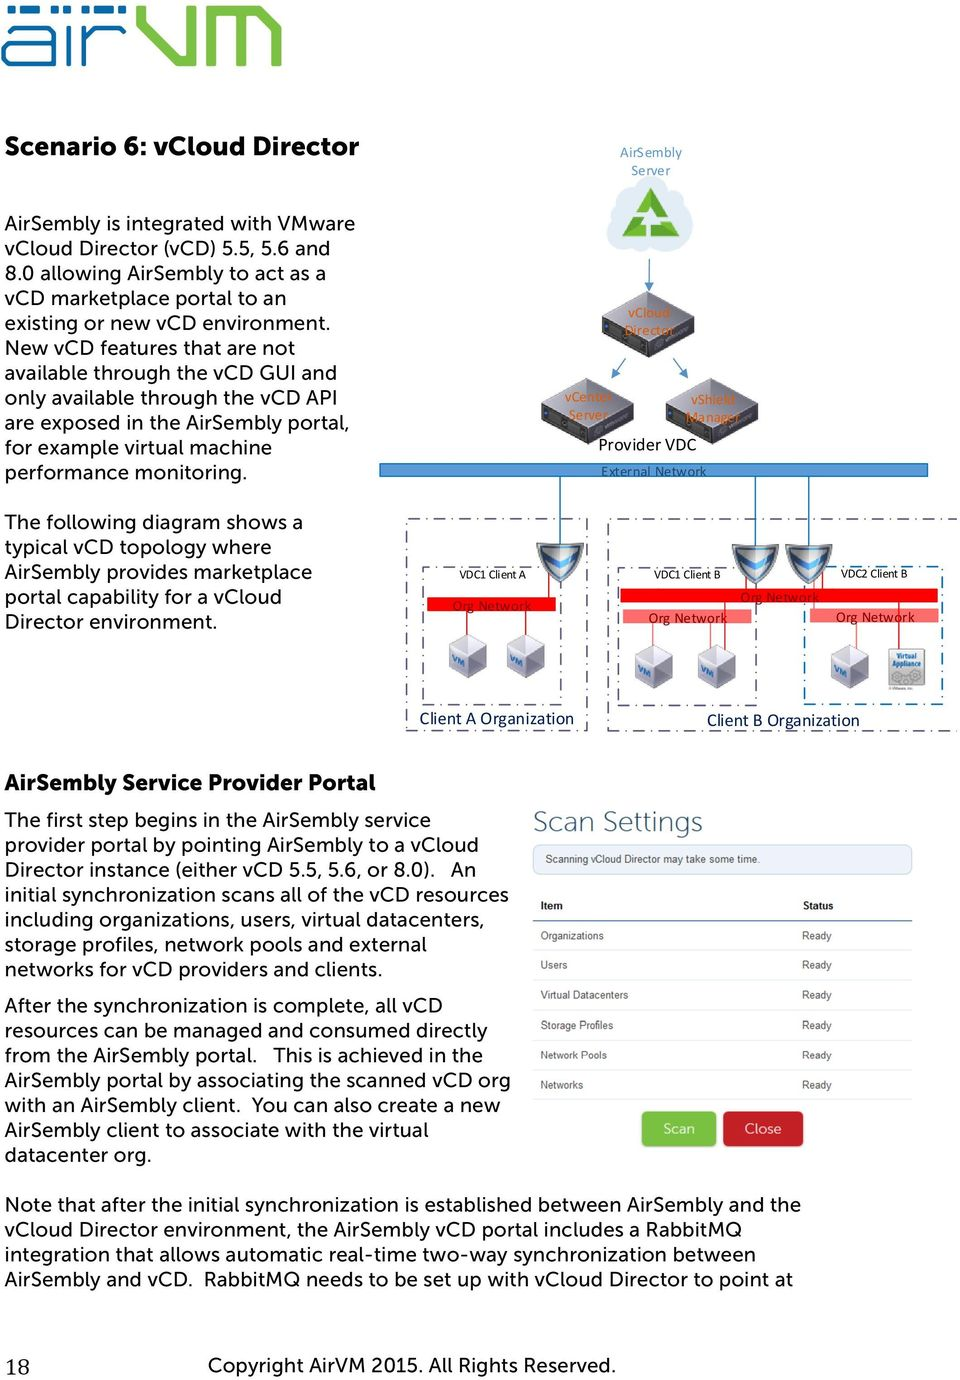 vcenter AirSembly vcloud Director Provider VDC External Network vshield Manager The following diagram shows a typical vcd topology where AirSembly provides marketplace portal capability for a vcloud